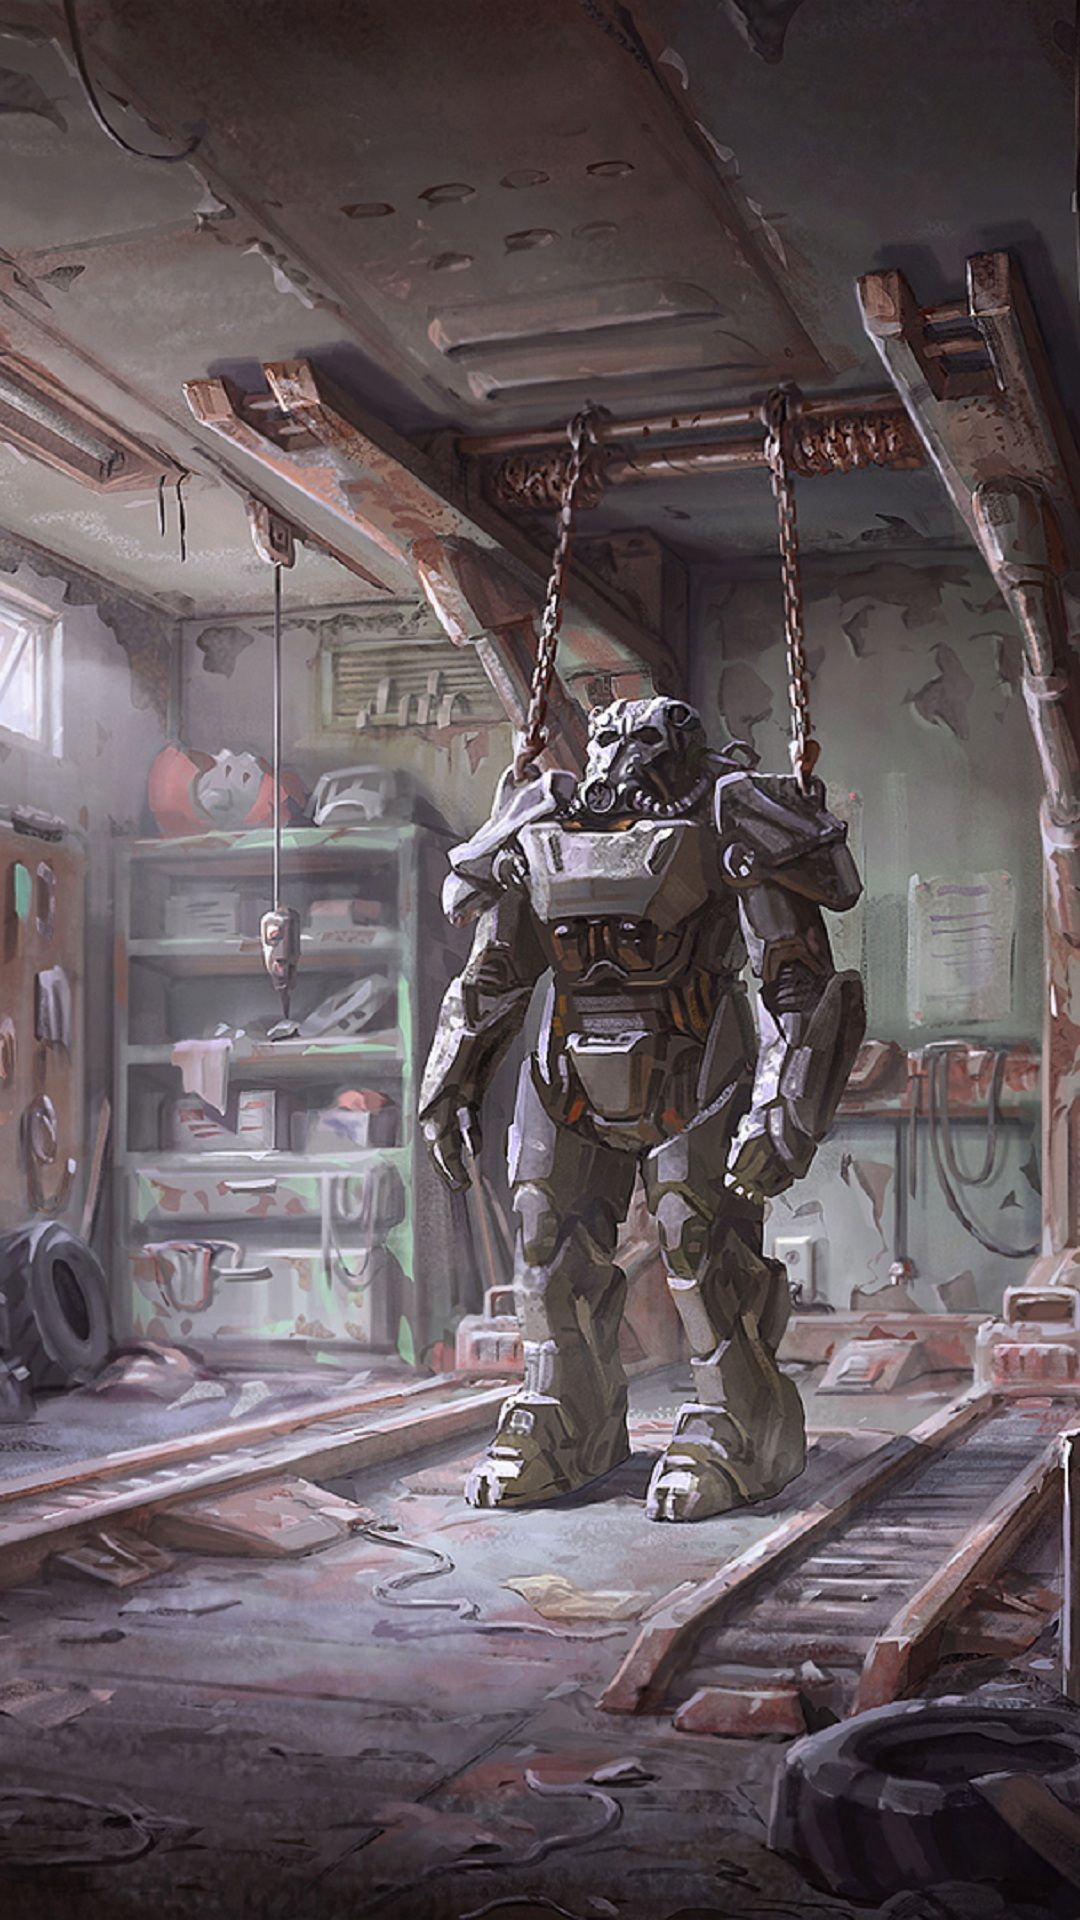 Fallout 4 1080x1920 Mobile Wallpapers Fallout Art Fallout